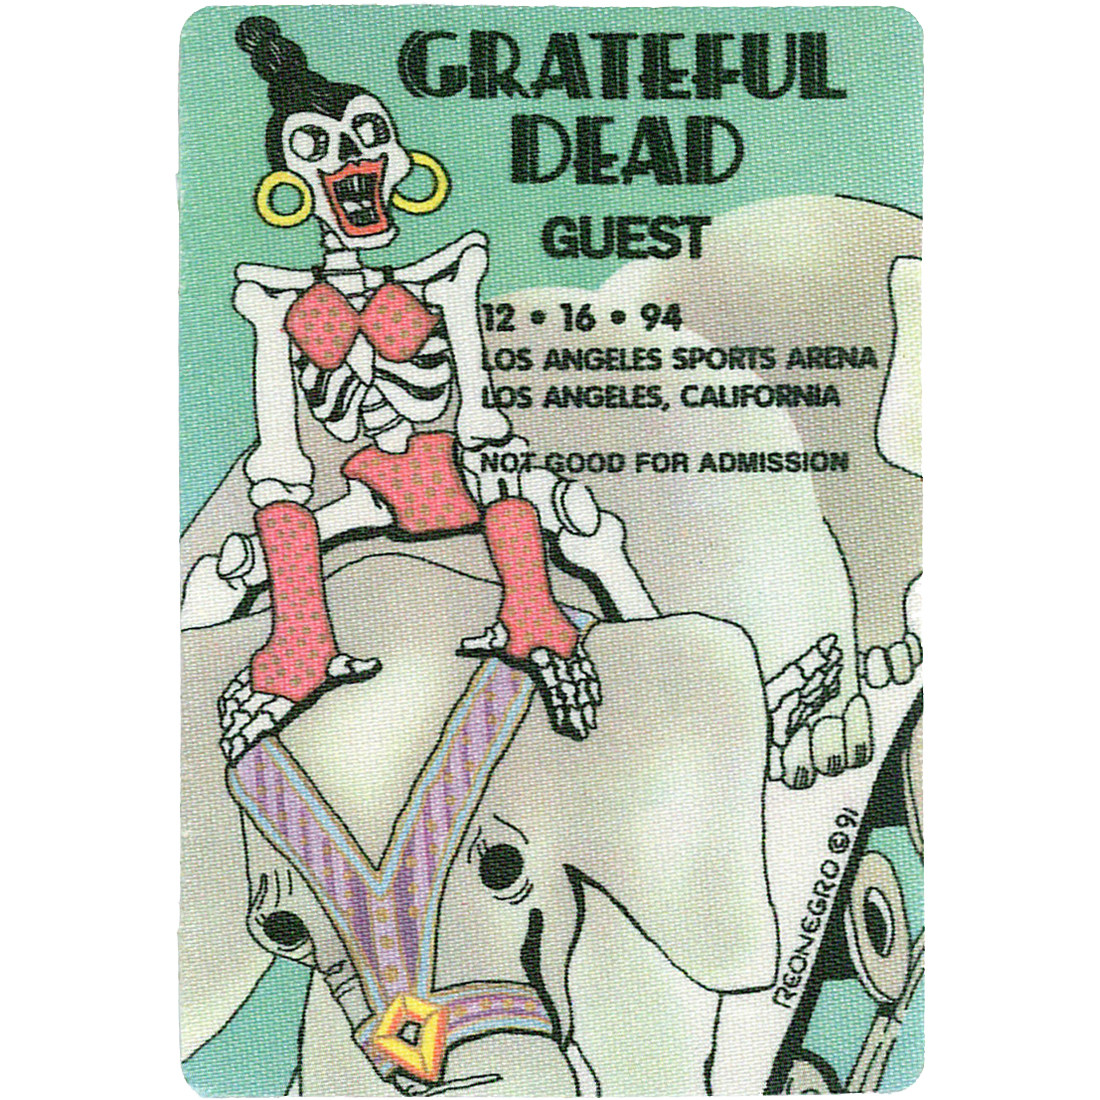 Grateful Dead 1994 12-16 Backstage Pass